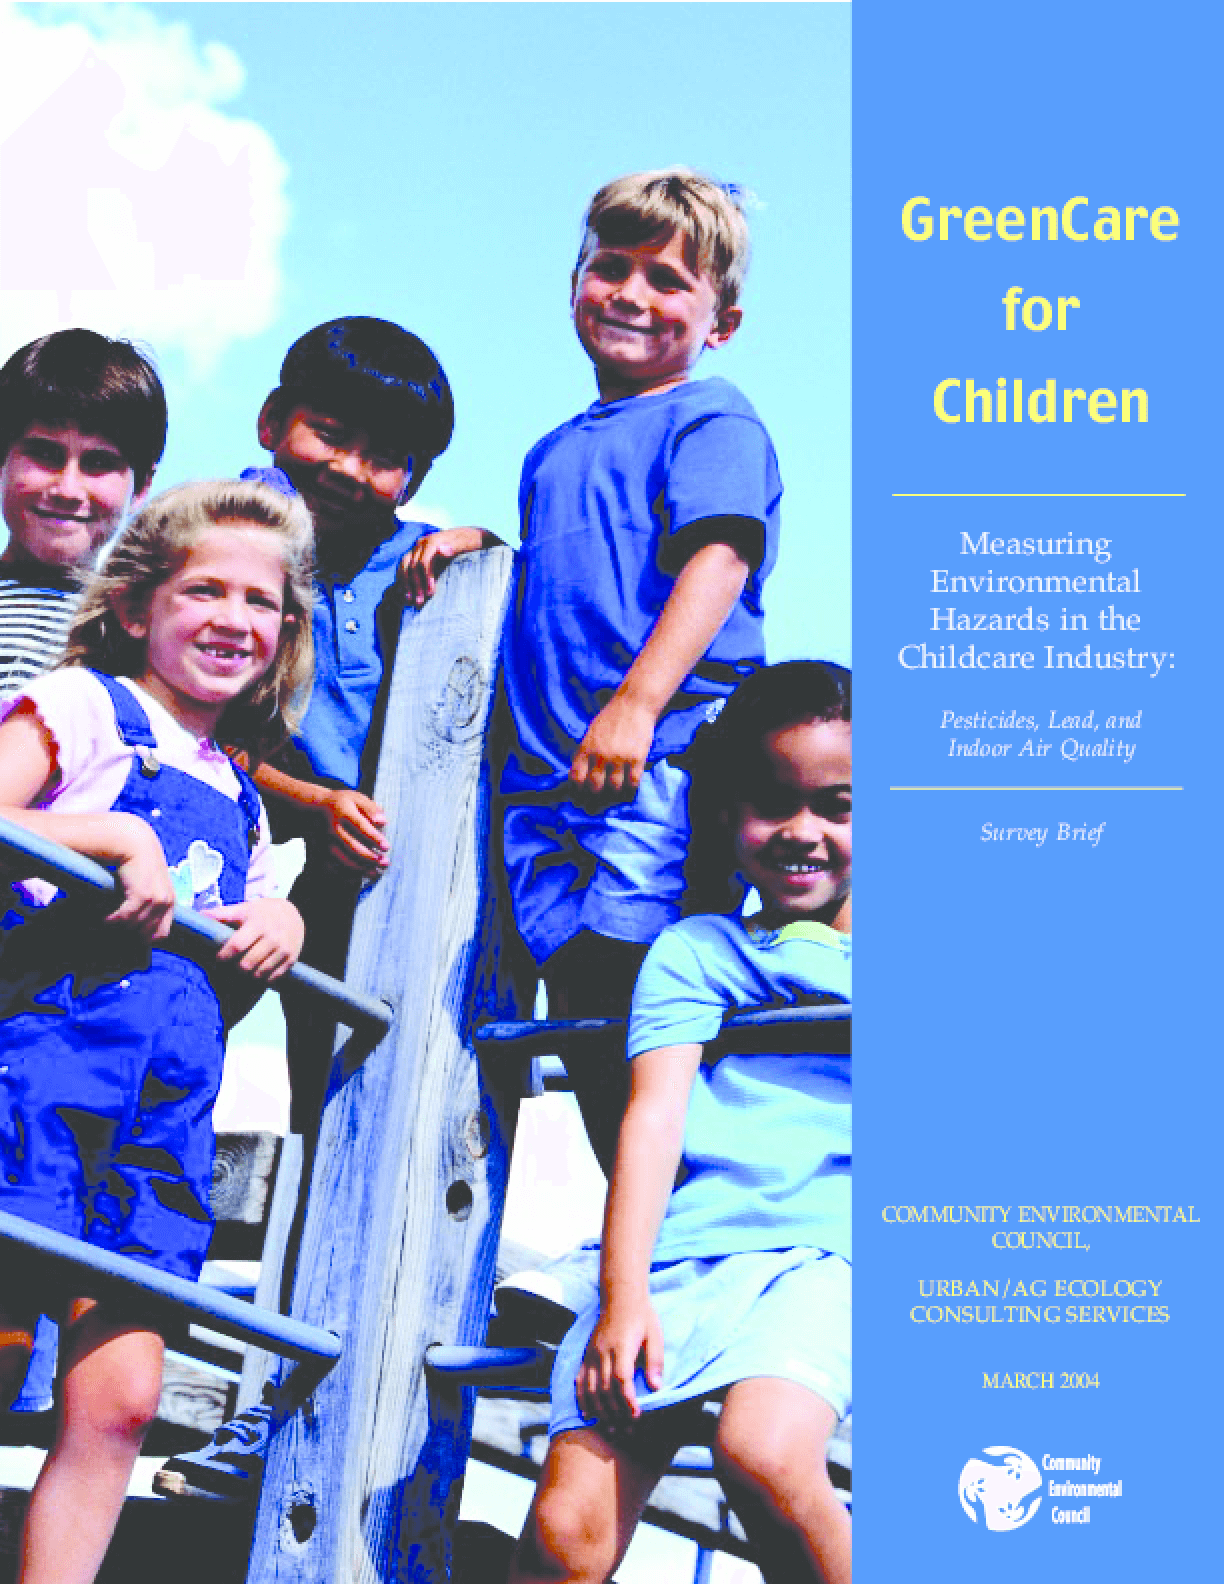 GreenCare for Children -- Measuring Environmental Hazards in the Childcare Industry